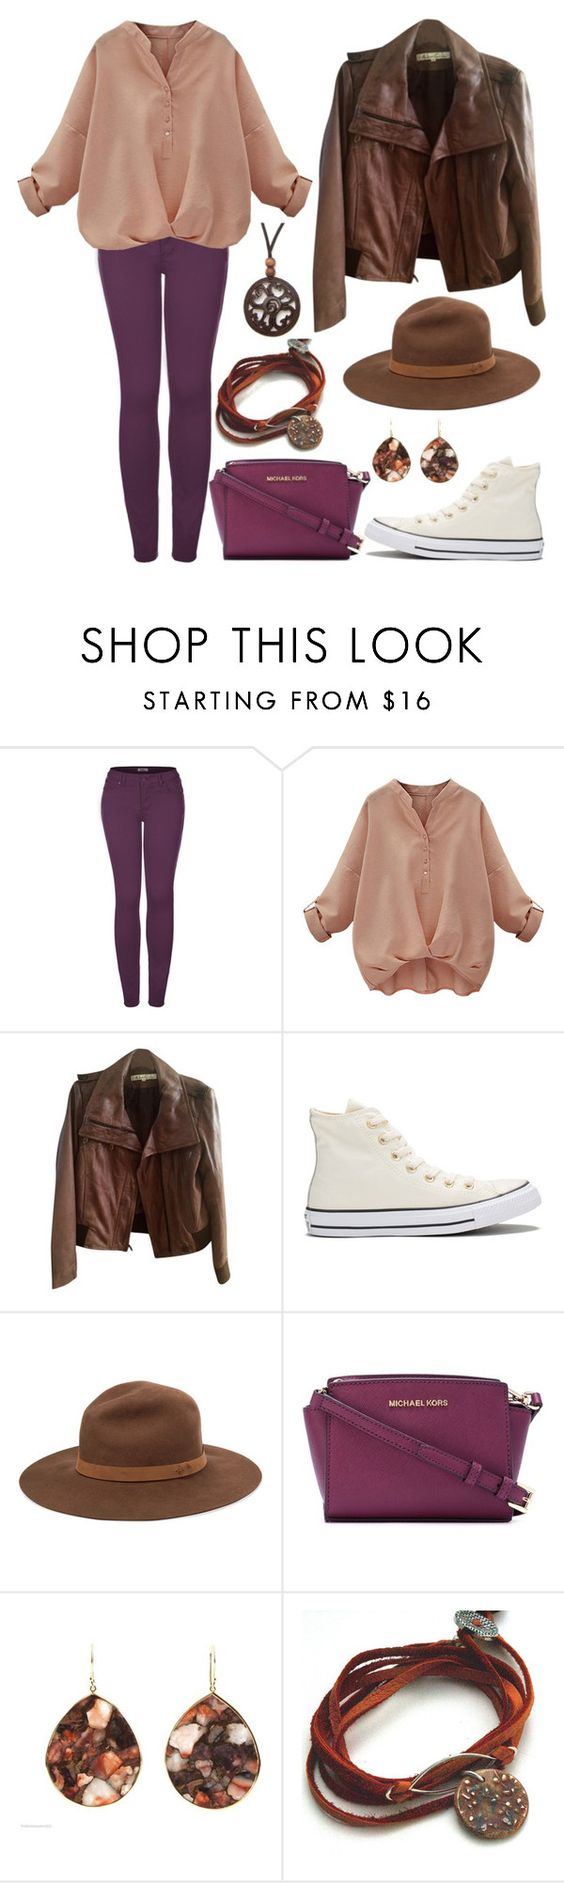 """Boost"" by staysaneinsideinsanity ❤ liked on Polyvore featuring 2LUV, Kenneth Cole, Converse, rag & bone, MICHAEL Michael Kors, Ippolita and NOVICA"